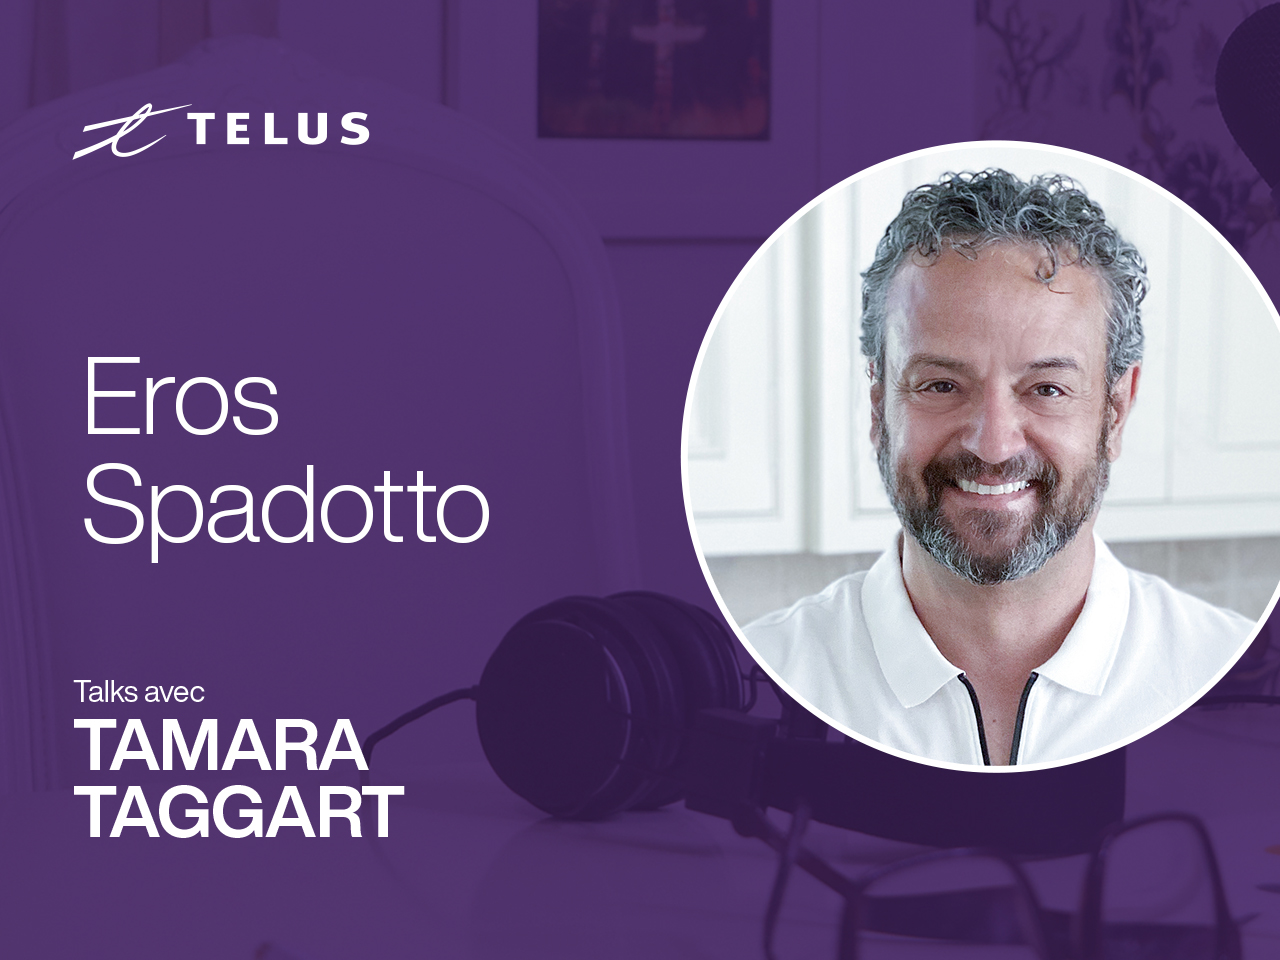 Eros Spadotto, Executive VP of Technology Strategy and Business Transformation at TELUS